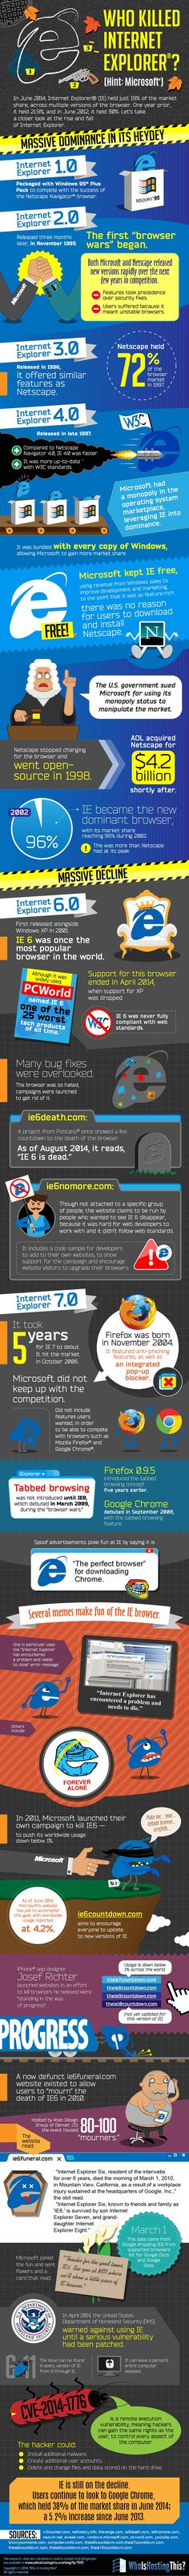 Who Killed Internet Explorer? #infographic #Internet #InternetExplorer (I think it was killed by Microsoft for making it a pain in the ass, and computer users that tired of its BS, like me)